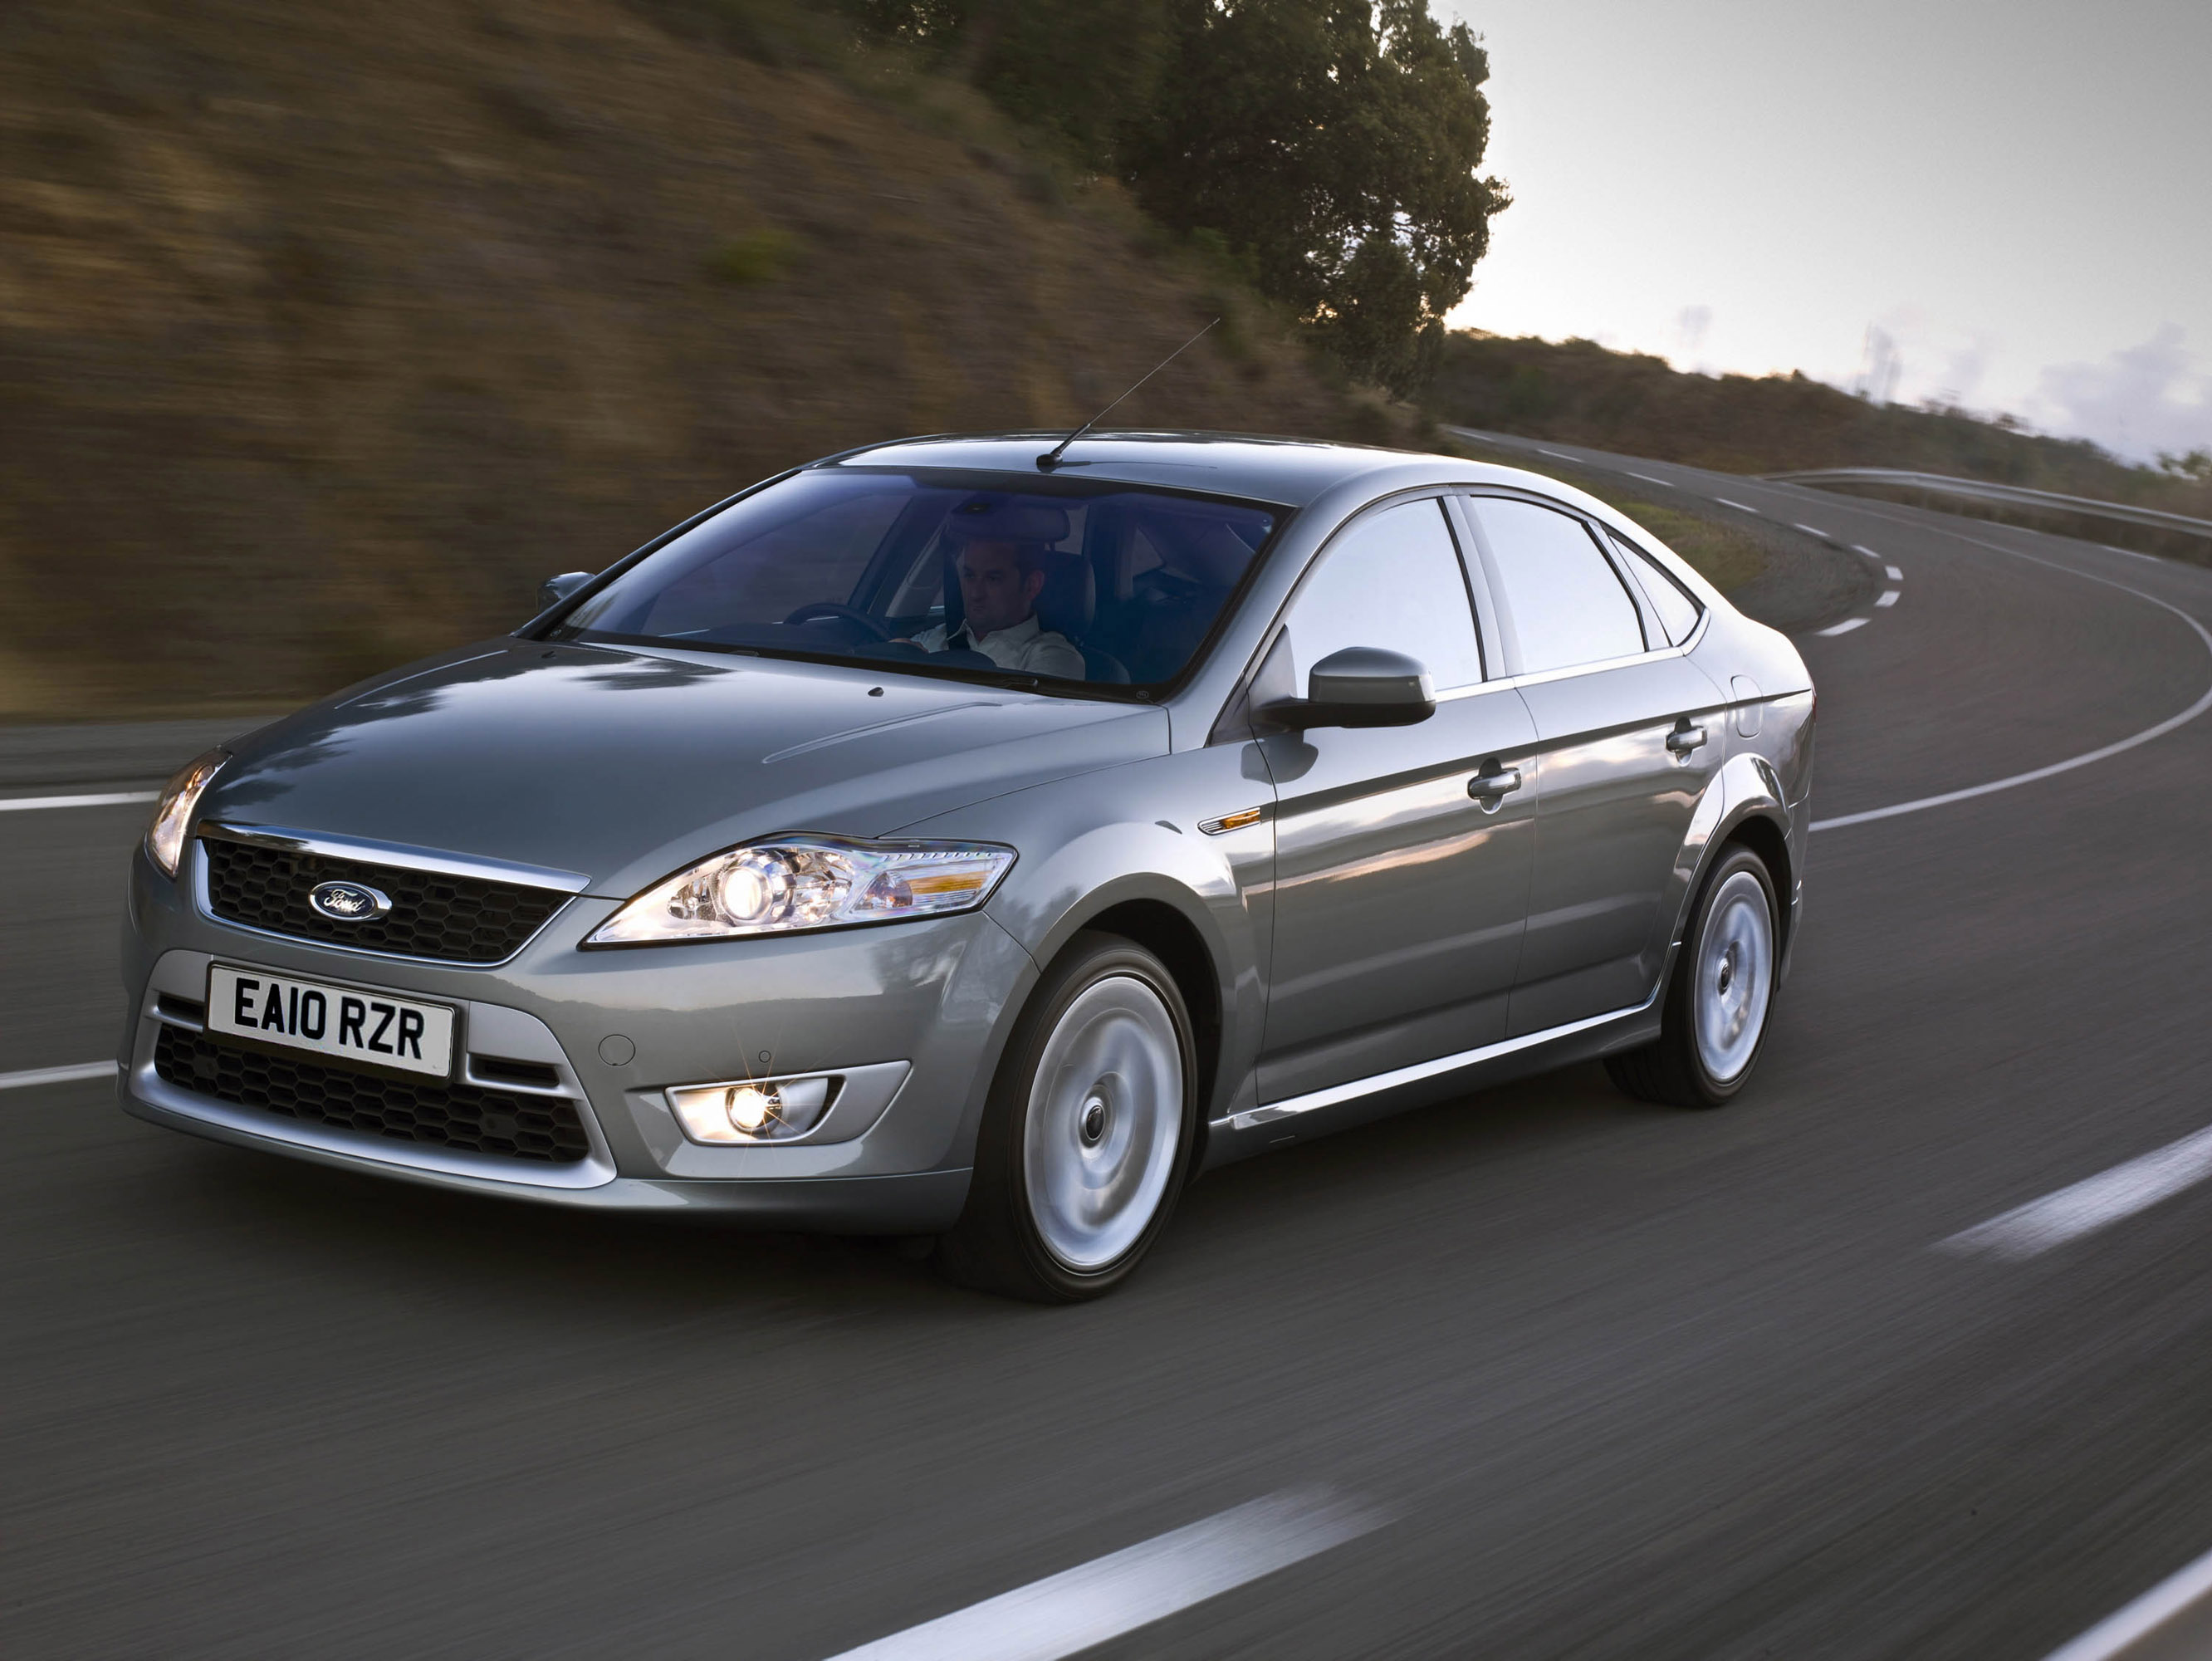 2010 ford mondeo available for the uk in autumn. Black Bedroom Furniture Sets. Home Design Ideas